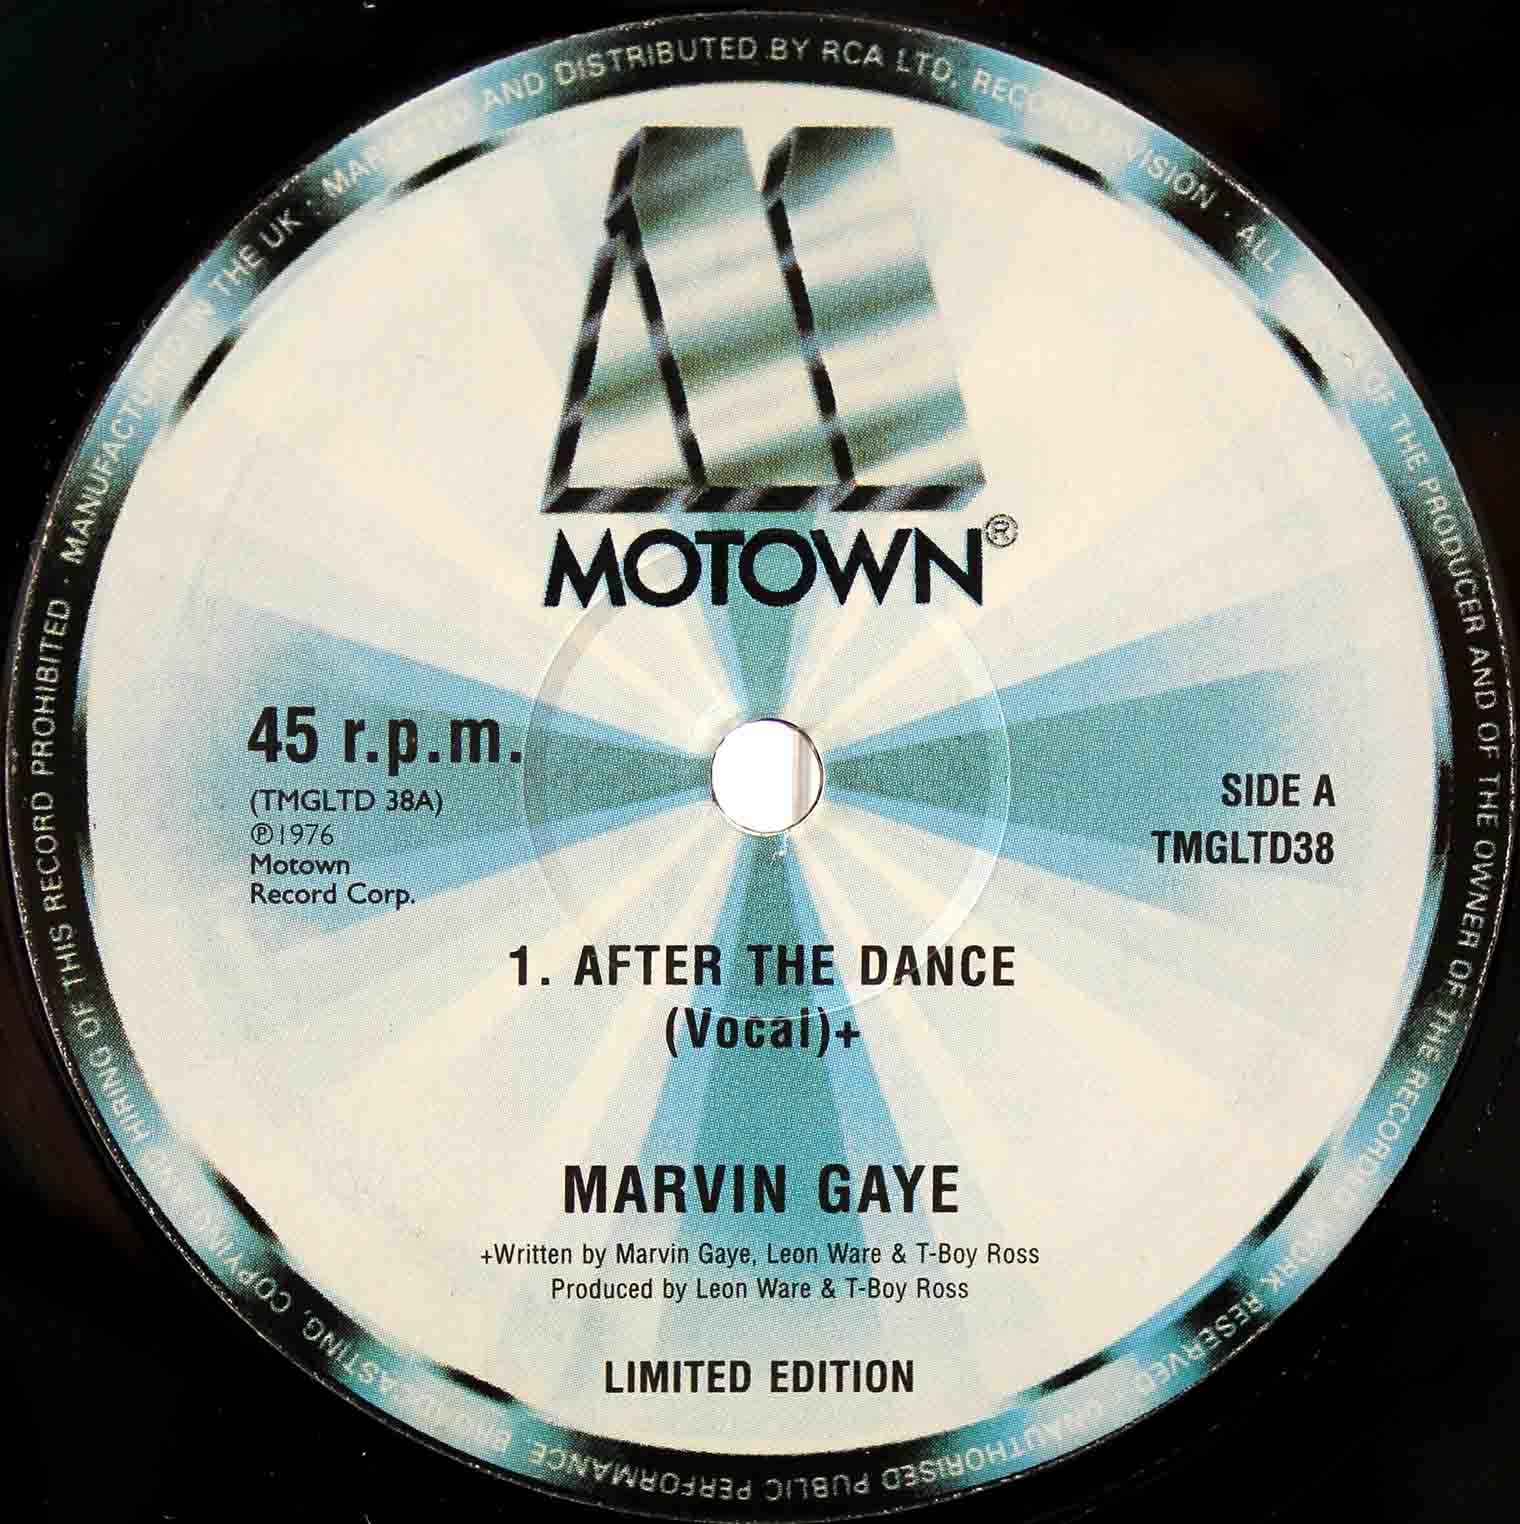 Marvin Gaye – after the dance 03